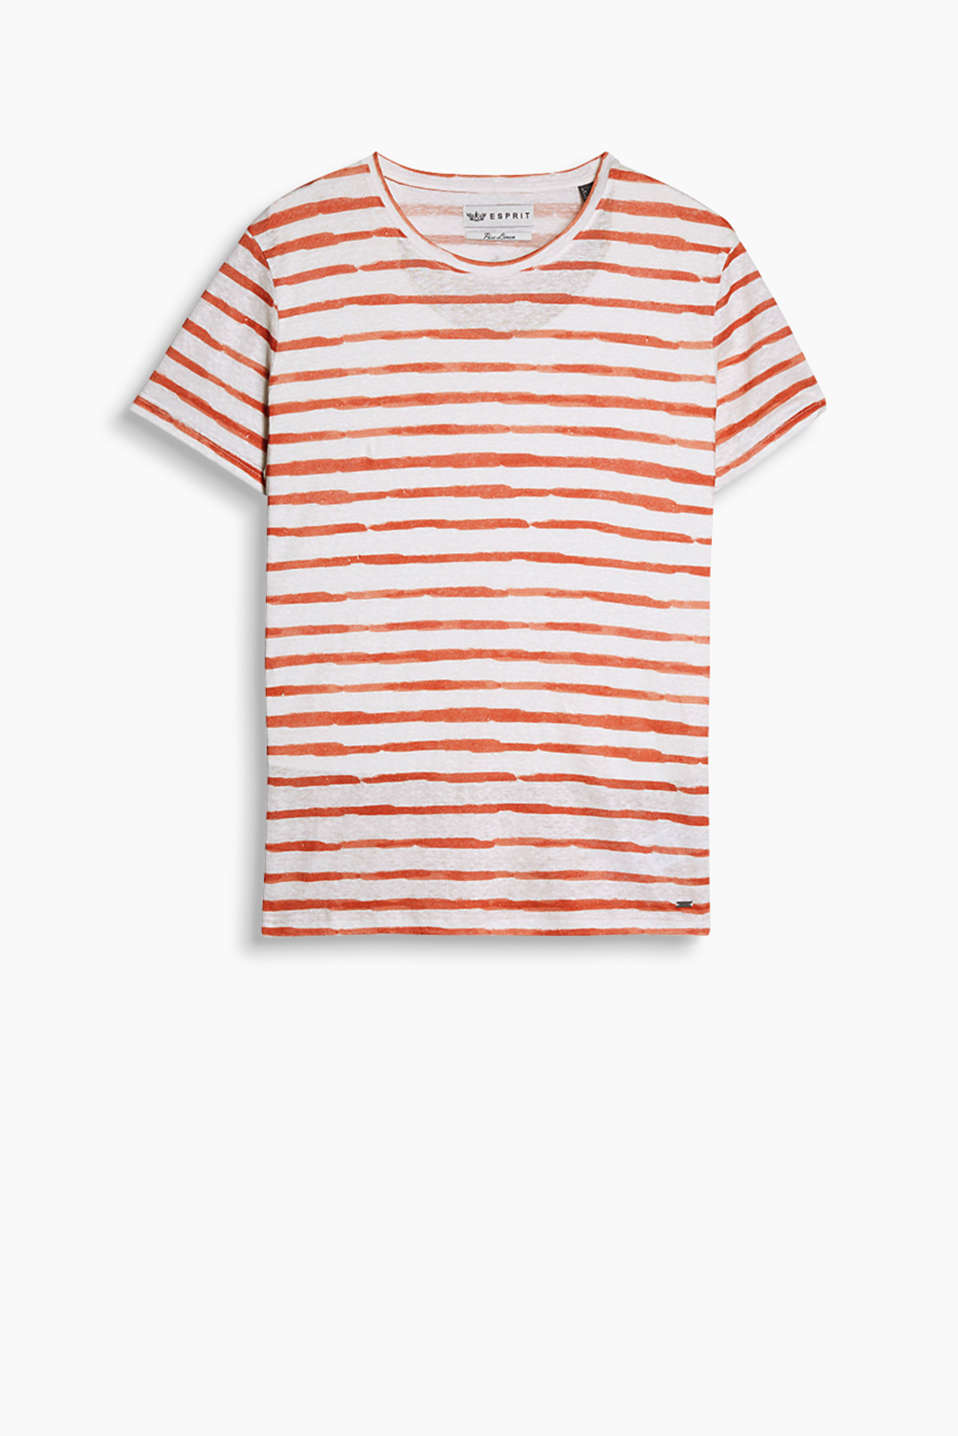 Striped T-shirt with a subtle sheen and slub texture